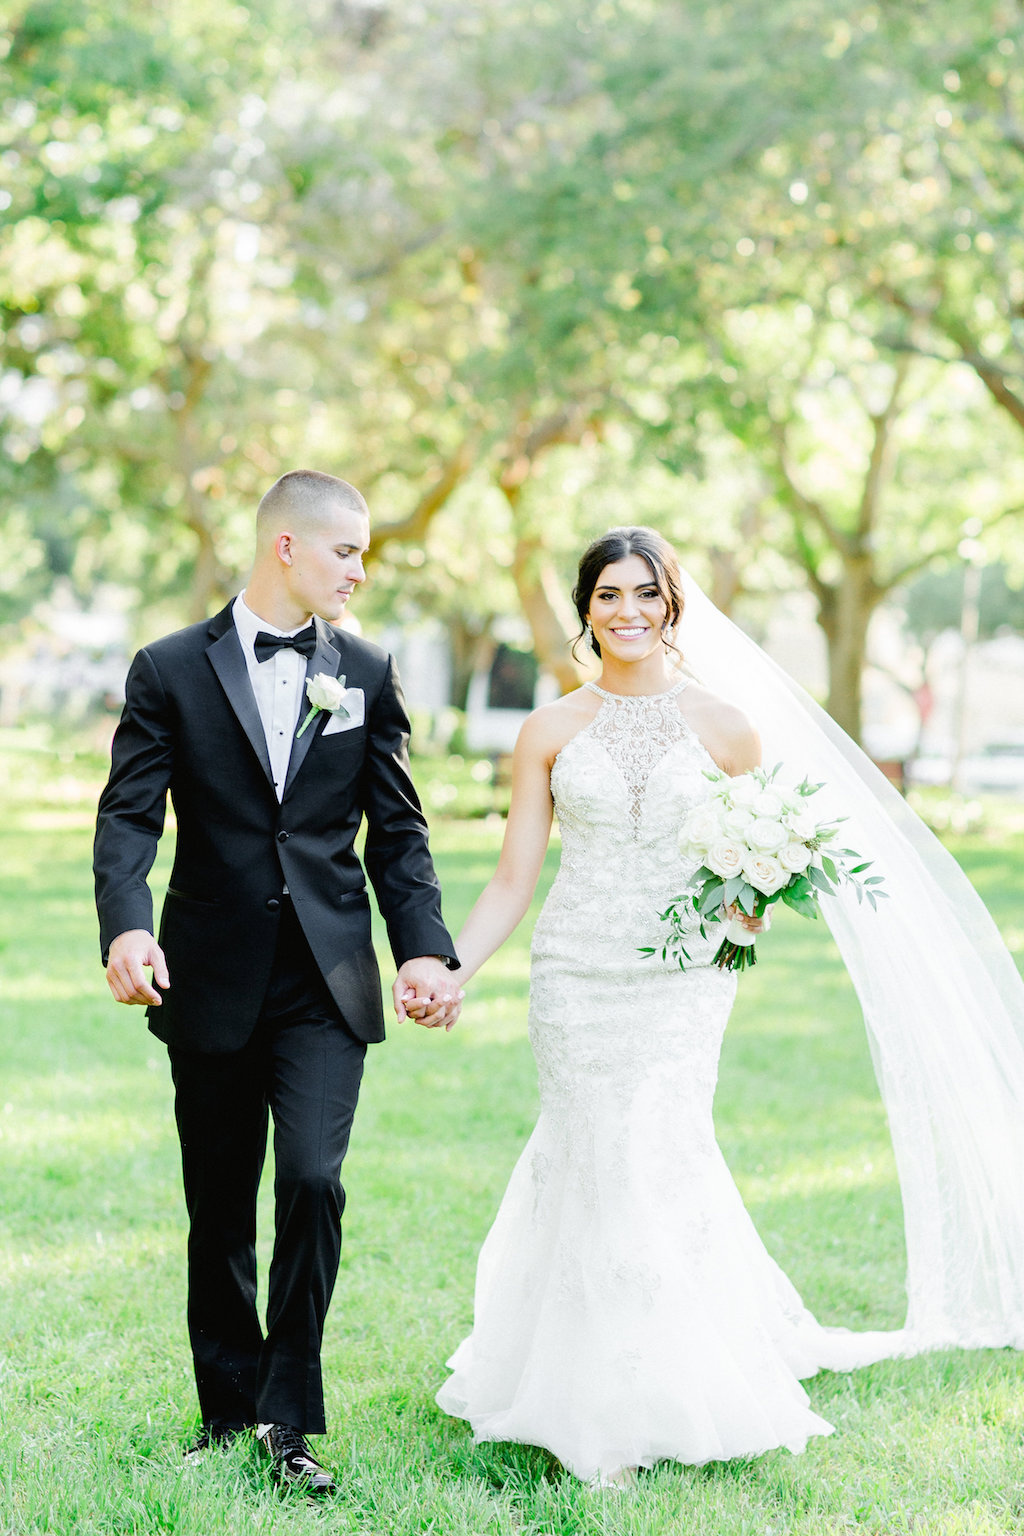 Outdoor Bride and Groom Wedding Portrait, Bride in Lace and Rhinestone High Neck Halter Fit and Flare Wedding Dress, Cathedral Length Veil, White and Greenery Bouquet, Groom in Black Tuxedo and White Rose Boutonniere   Tampa Wedding Photographer Ailyn La Torre   St. Petersburg Hair Artist Femme Akoi